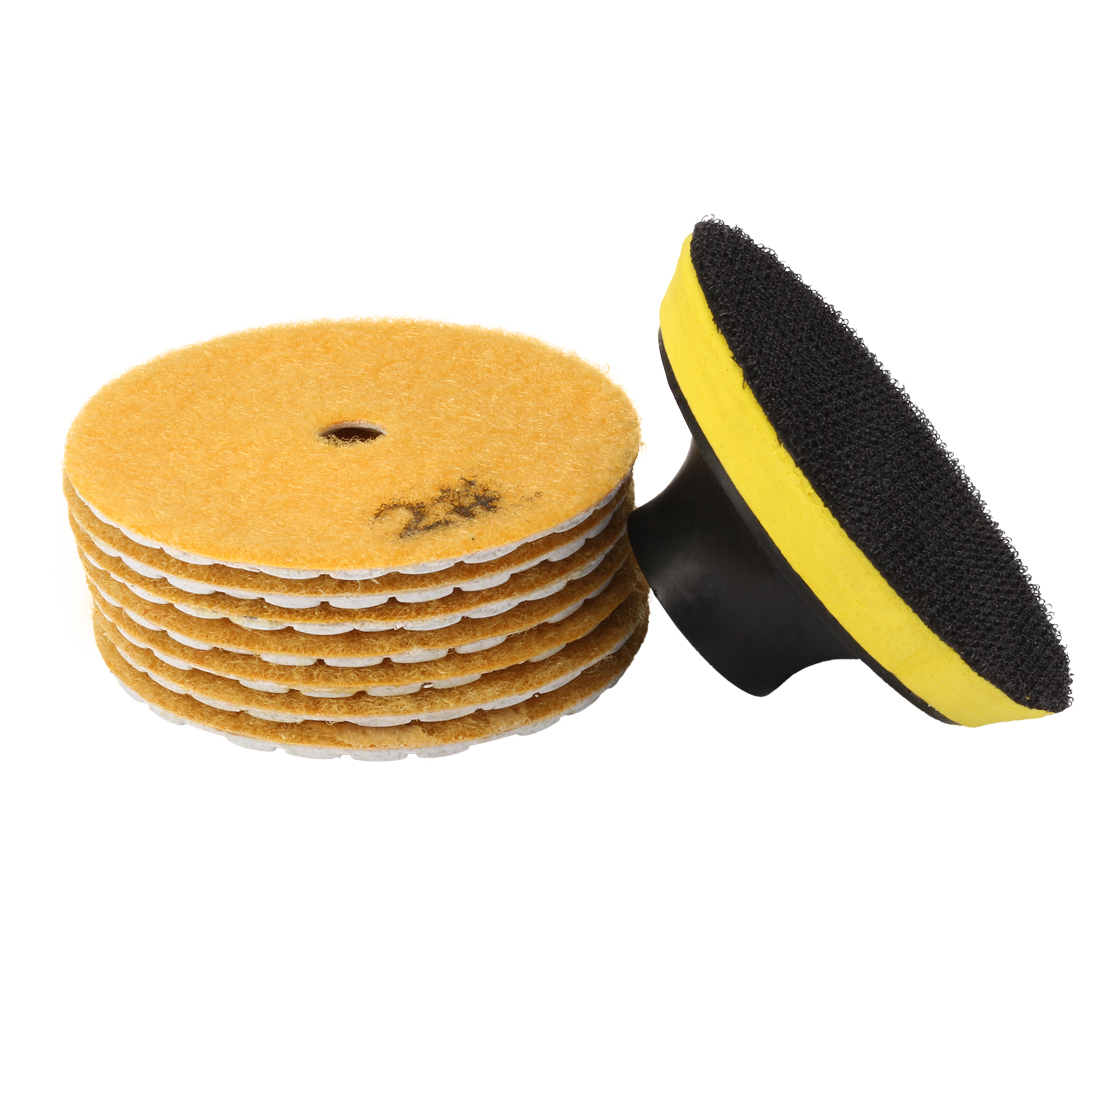 3-inch Diamond Dry Polishing Pad Grit 300 7PCS for Sanding Marble Granite Stone